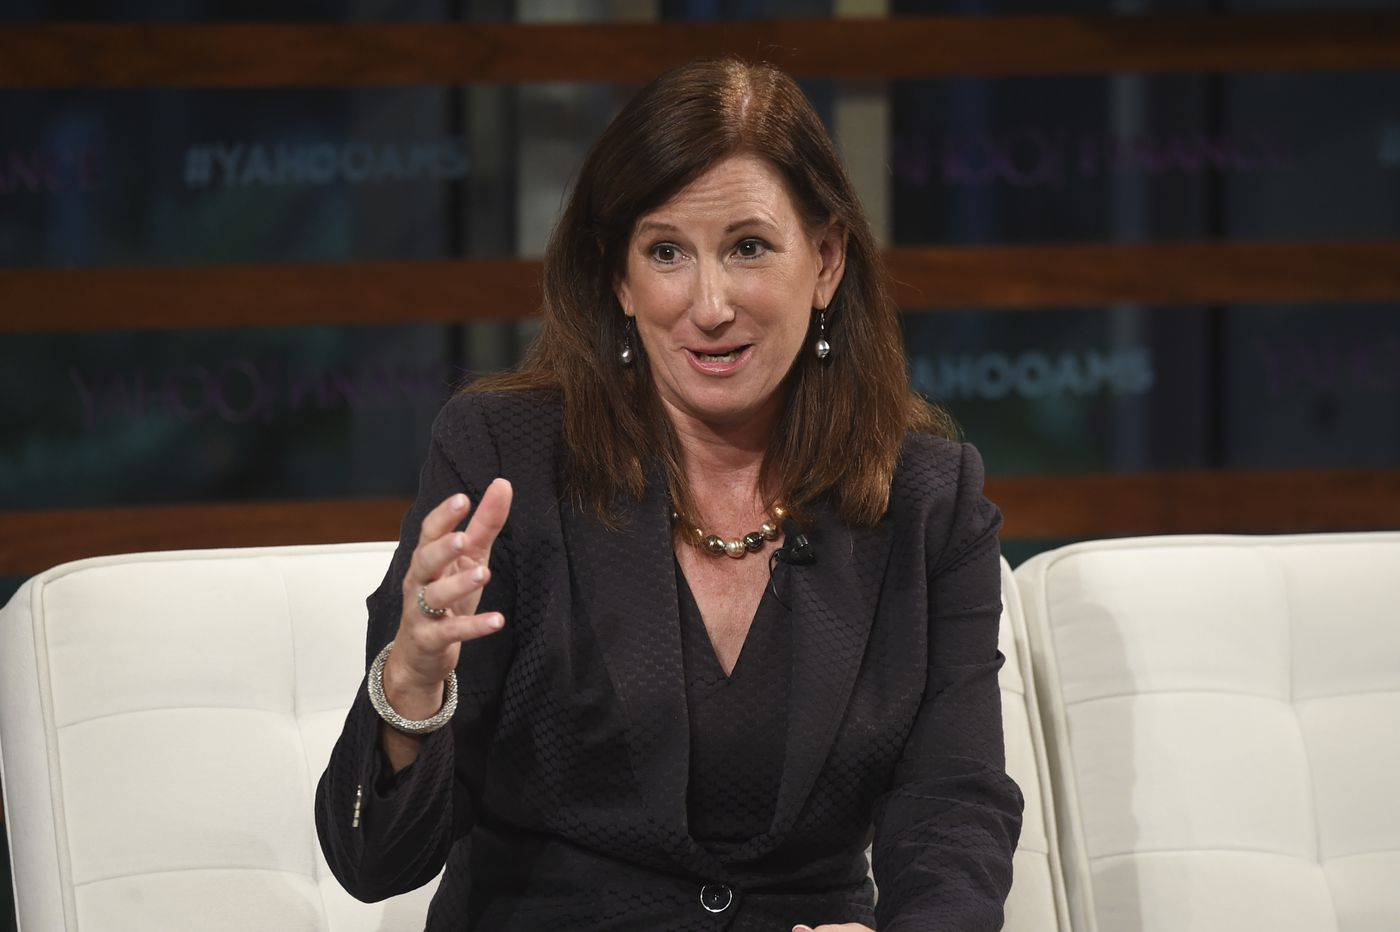 New WNBA commissioner Cathy Engelbert, Collingswood-born Deloitte CEO, faces CBA and other big questions